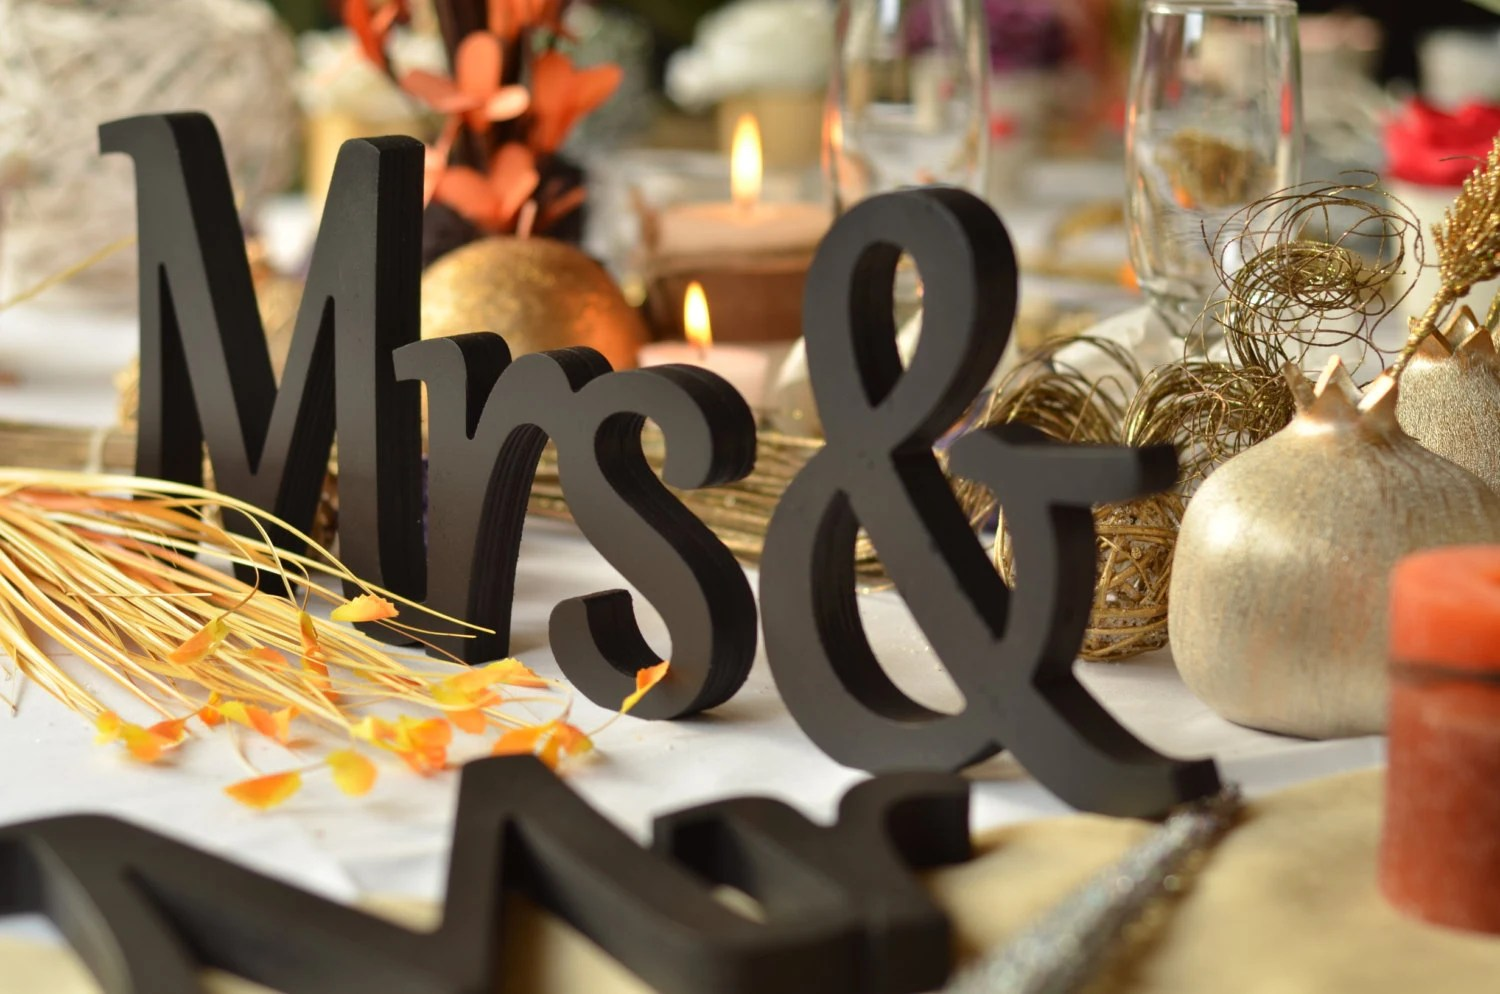 Mr. & Mrs. Letters Wedding Table Decoration Freestanding